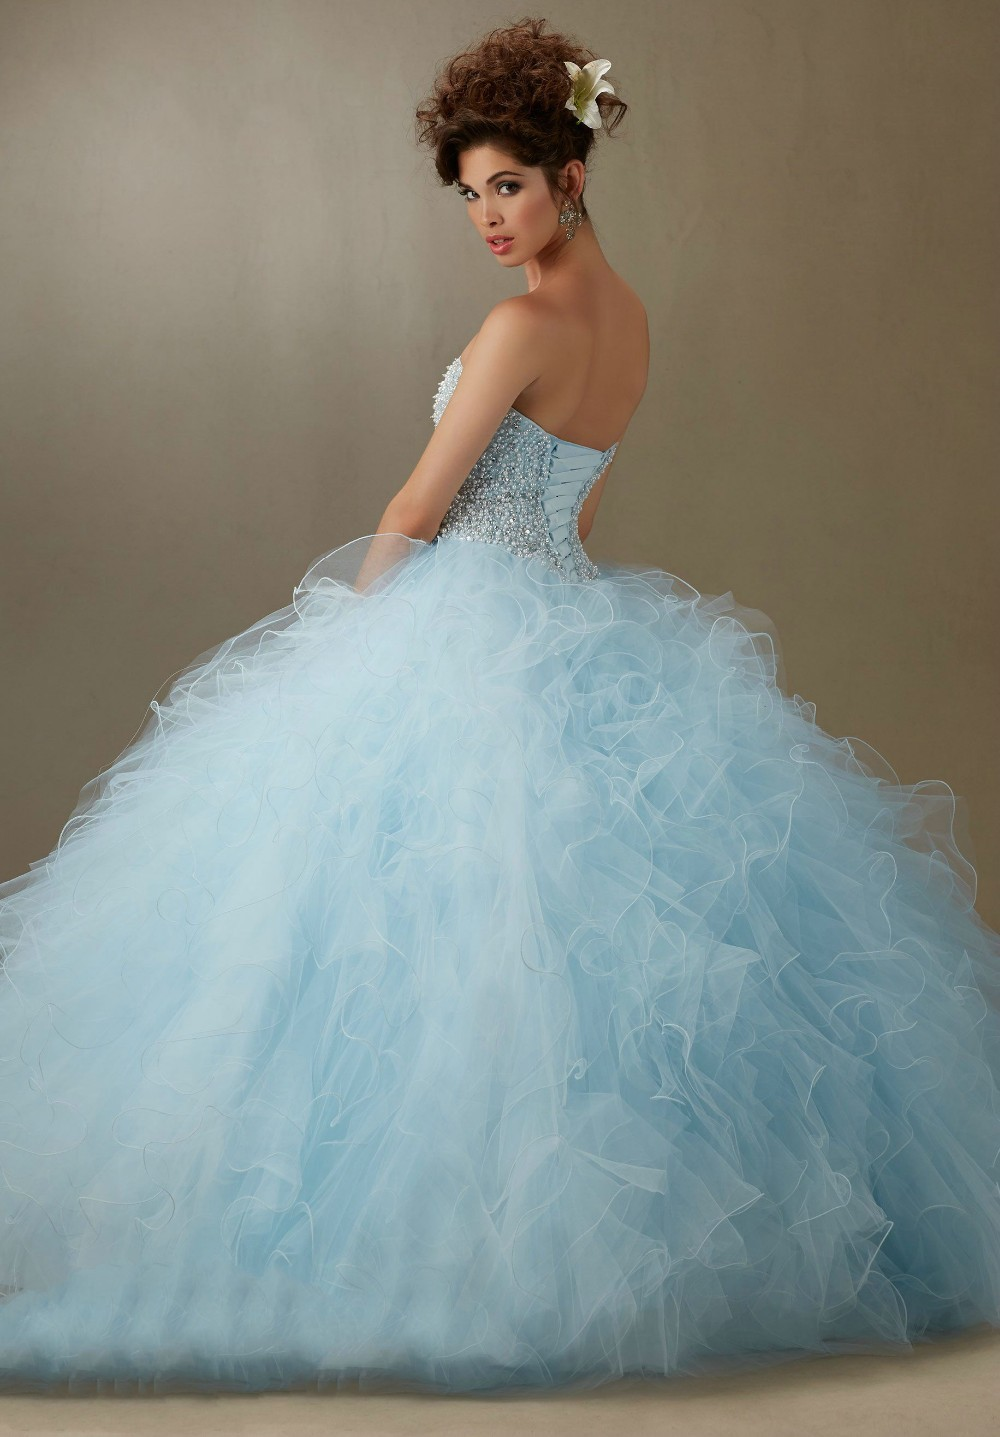 3a83efa82df Elegant Quinceanera Dresses Light Blue Pink Organza Ball Gown Custom Made  Beade Crystal Ruffles Vestidos De 15 Anos Q1032-in Quinceanera Dresses from  ...